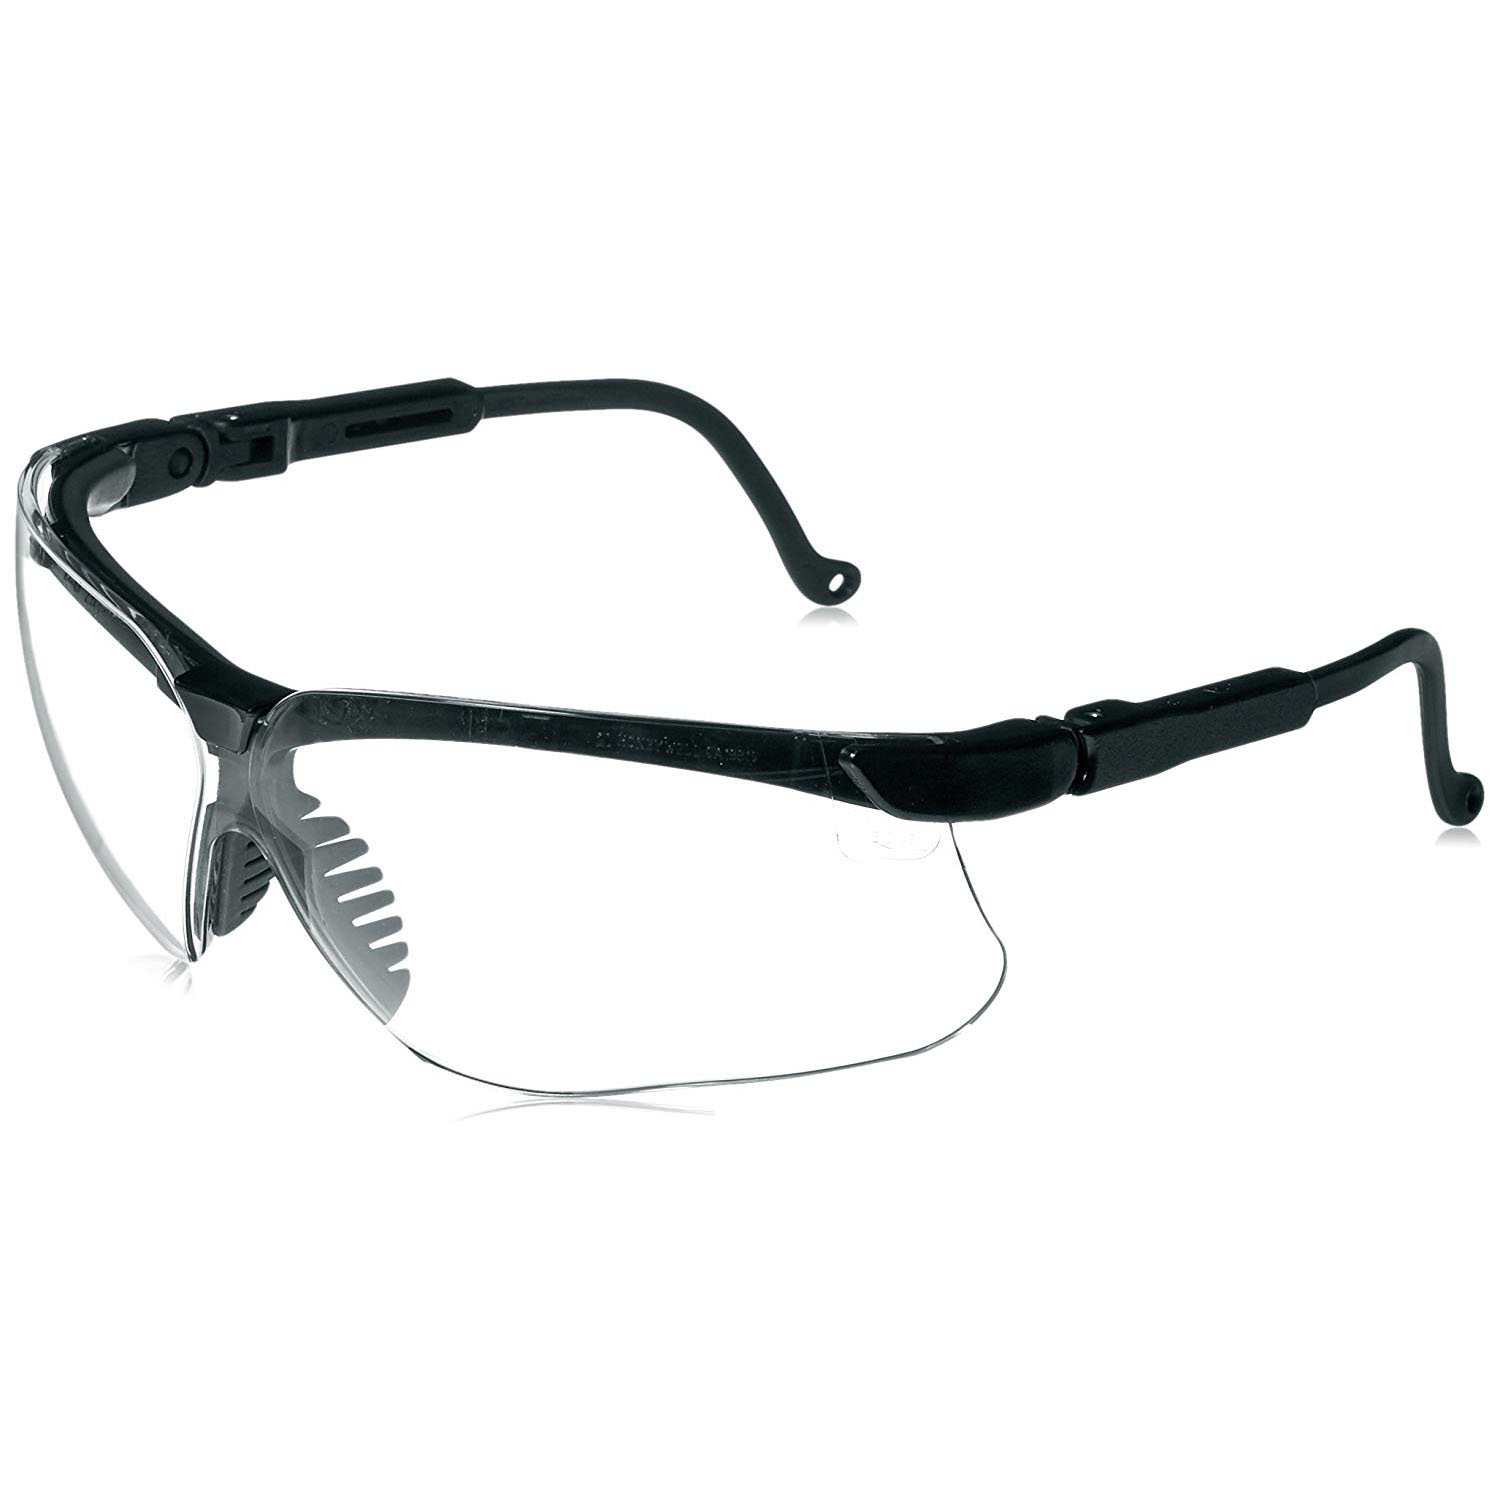 cf631bfeb Details about Howard Leight Genesis Tactical Sharp-Shooter, Shooting  Glasses, Clear Lens